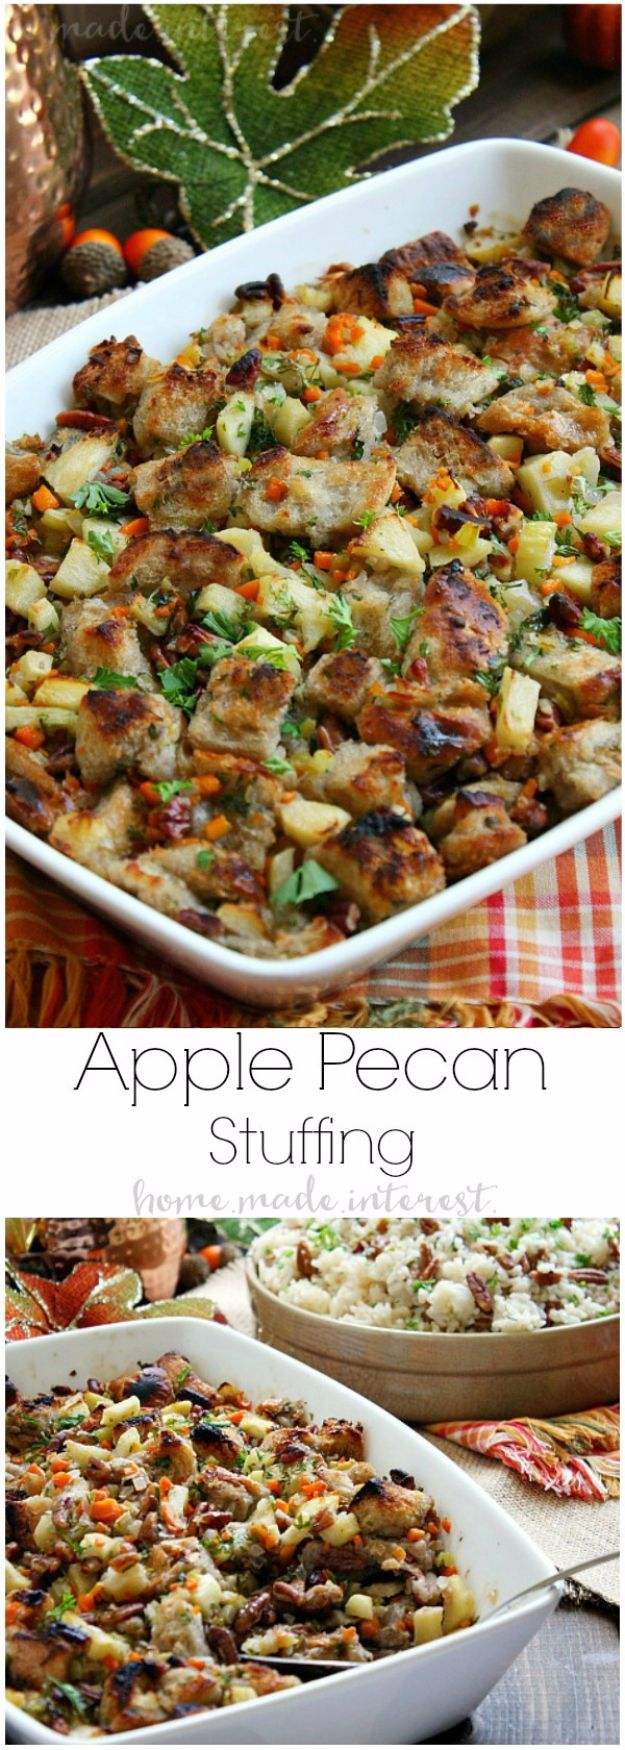 Healthy Thanksgiving Recipes - Apple Pecan Stuffing - Low fat Versions of Your Favorite Holiday Recipe for Turkey, Stuffing, Gravy, Pie and Desserts, Appetizers, Vegetables and Side Dishes like Spinach, Broccoli, Cranberries, Mashed Potatoes, Sweet Potatoes and Green Beans - Easy and Quick Last Minute Thanksgiving Recipes for Low Carb, Low Fat and Clean Eating Diets http://diyjoy.com/healthy-thanksgiving-recipes